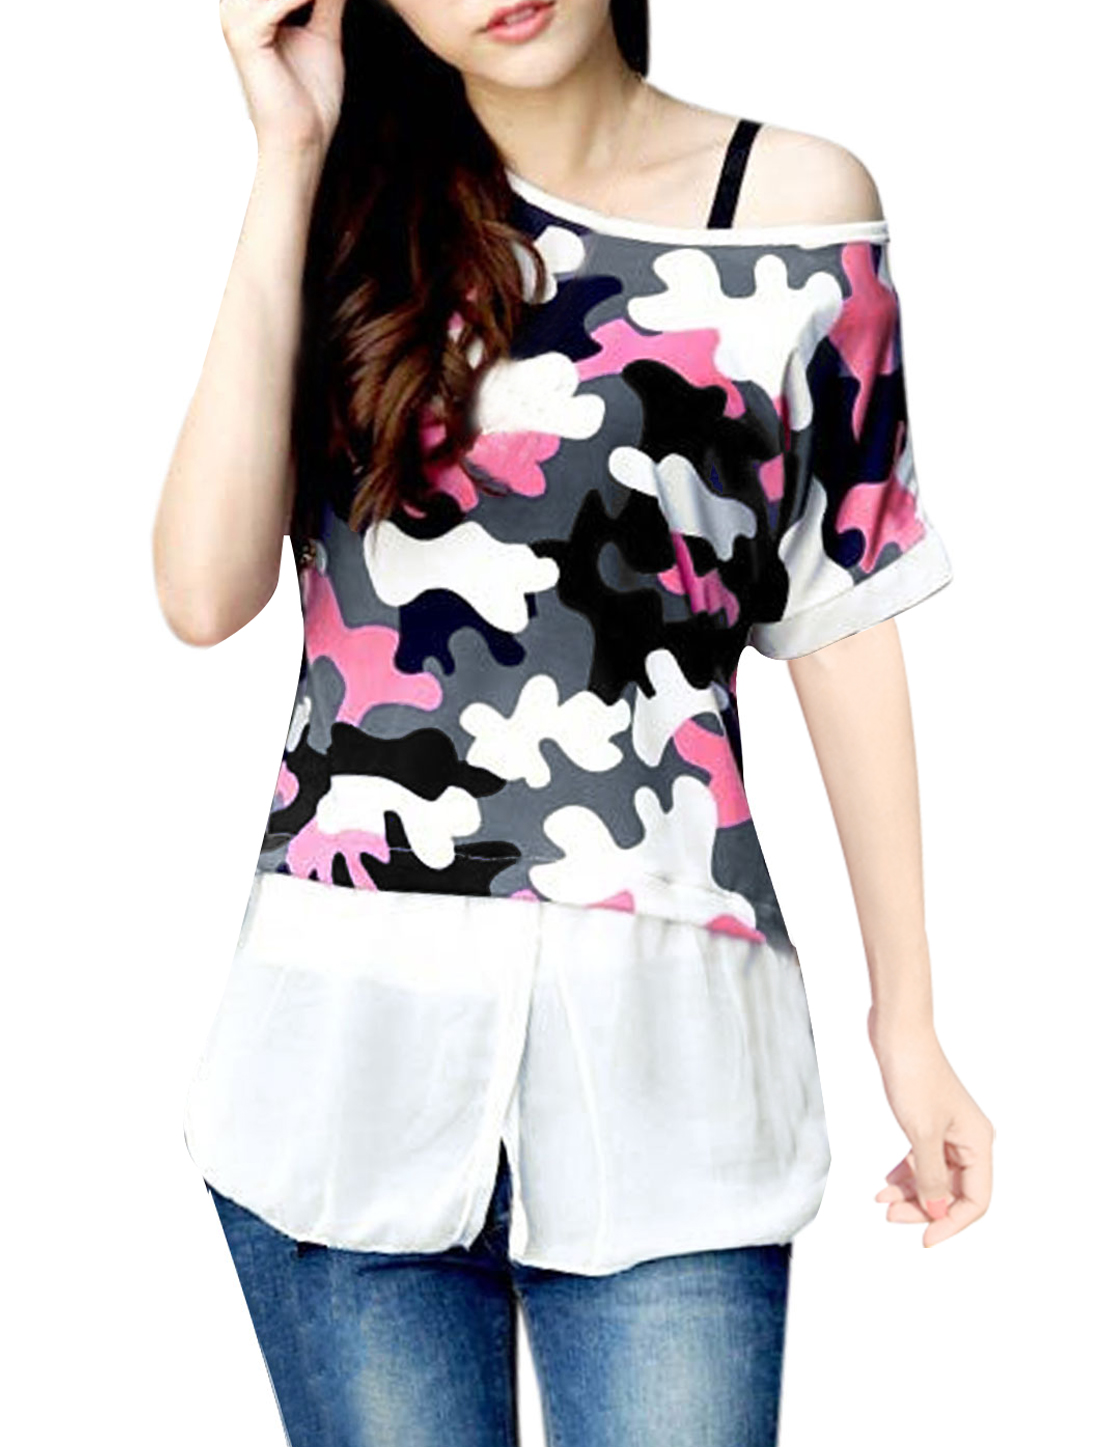 Lady Chiffon Panel Novelty Print Batwing Sleeve Tee Shirt Multicolor XS